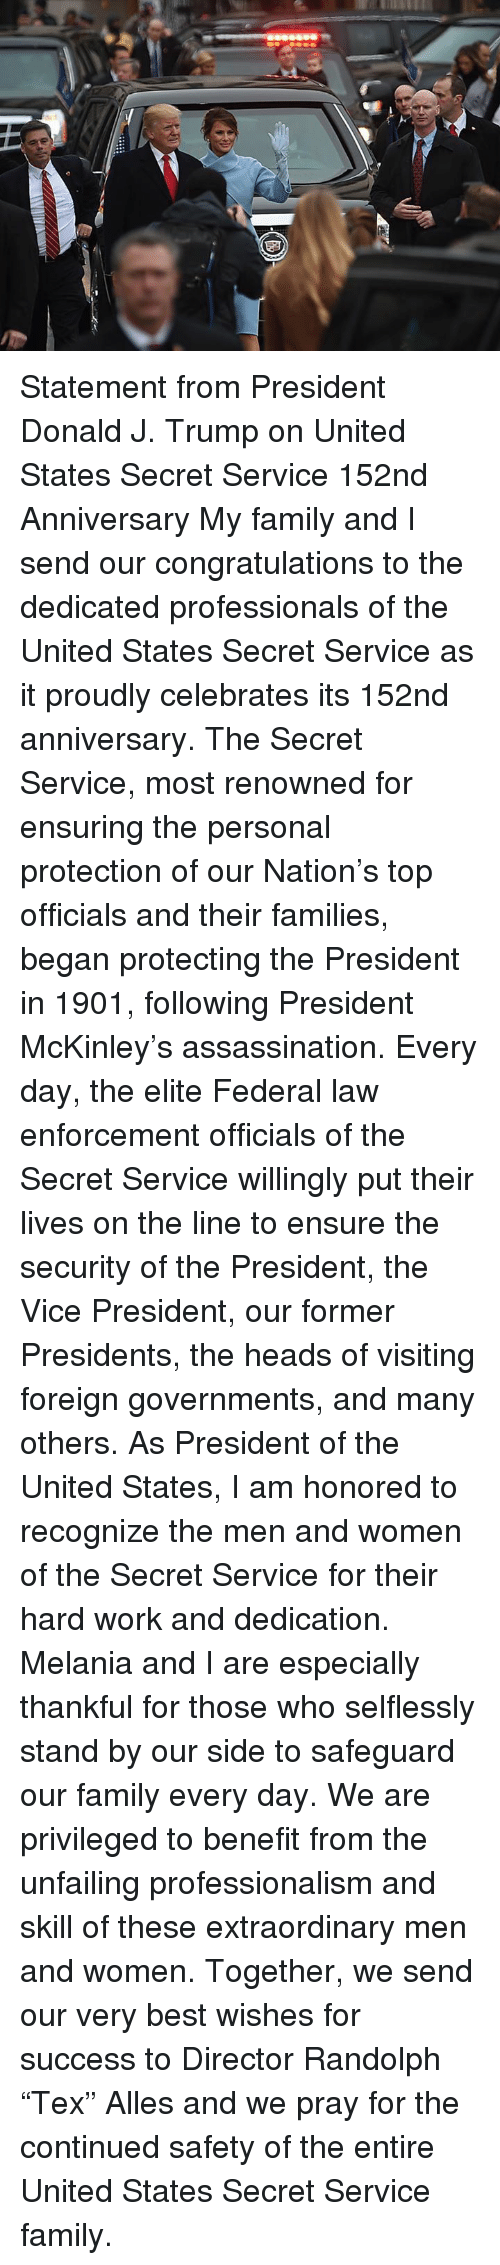 """mckinley: Statement from President Donald J. Trump on United States Secret Service 152nd Anniversary  My family and I send our congratulations to the dedicated professionals of the United States Secret Service as it proudly celebrates its 152nd anniversary.  The Secret Service, most renowned for ensuring the personal protection of our Nation's top officials and their families, began protecting the President in 1901, following President McKinley's assassination.  Every day, the elite Federal law enforcement officials of the Secret Service willingly put their lives on the line to ensure the security of the President, the Vice President, our former Presidents, the heads of visiting foreign governments, and many others.   As President of the United States, I am honored to recognize the men and women of the Secret Service for their hard work and dedication.  Melania and I are especially thankful for those who selflessly stand by our side to safeguard our family every day.  We are privileged to benefit from the unfailing professionalism and skill of these extraordinary men and women.  Together, we send our very best wishes for success to Director Randolph """"Tex"""" Alles and we pray for the continued safety of the entire United States Secret Service family."""